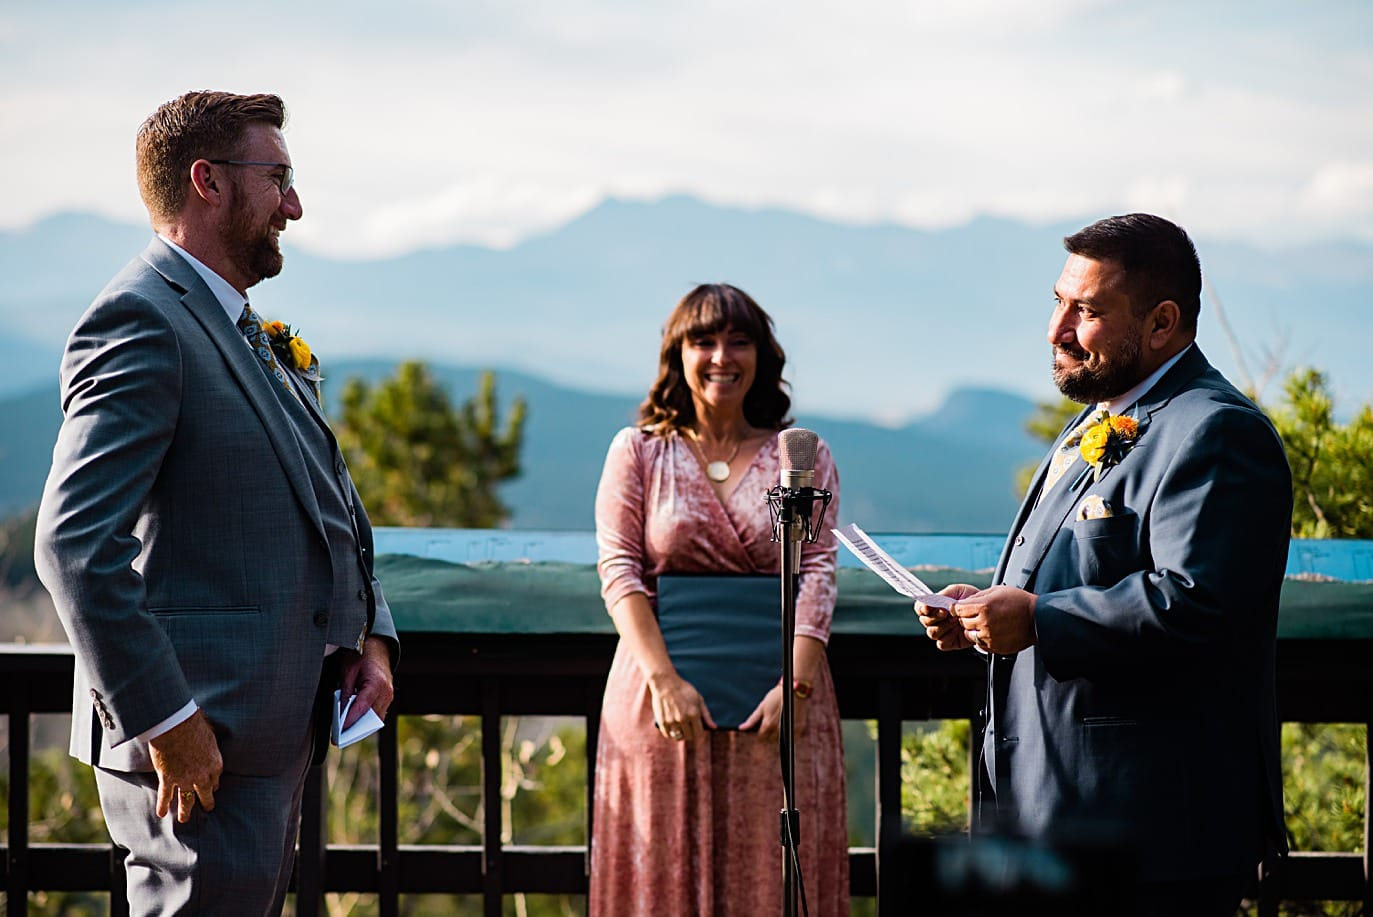 beautiful views at Panorama point during LGBTQ wedding by Colorado LGBT photographer Jennie Crate